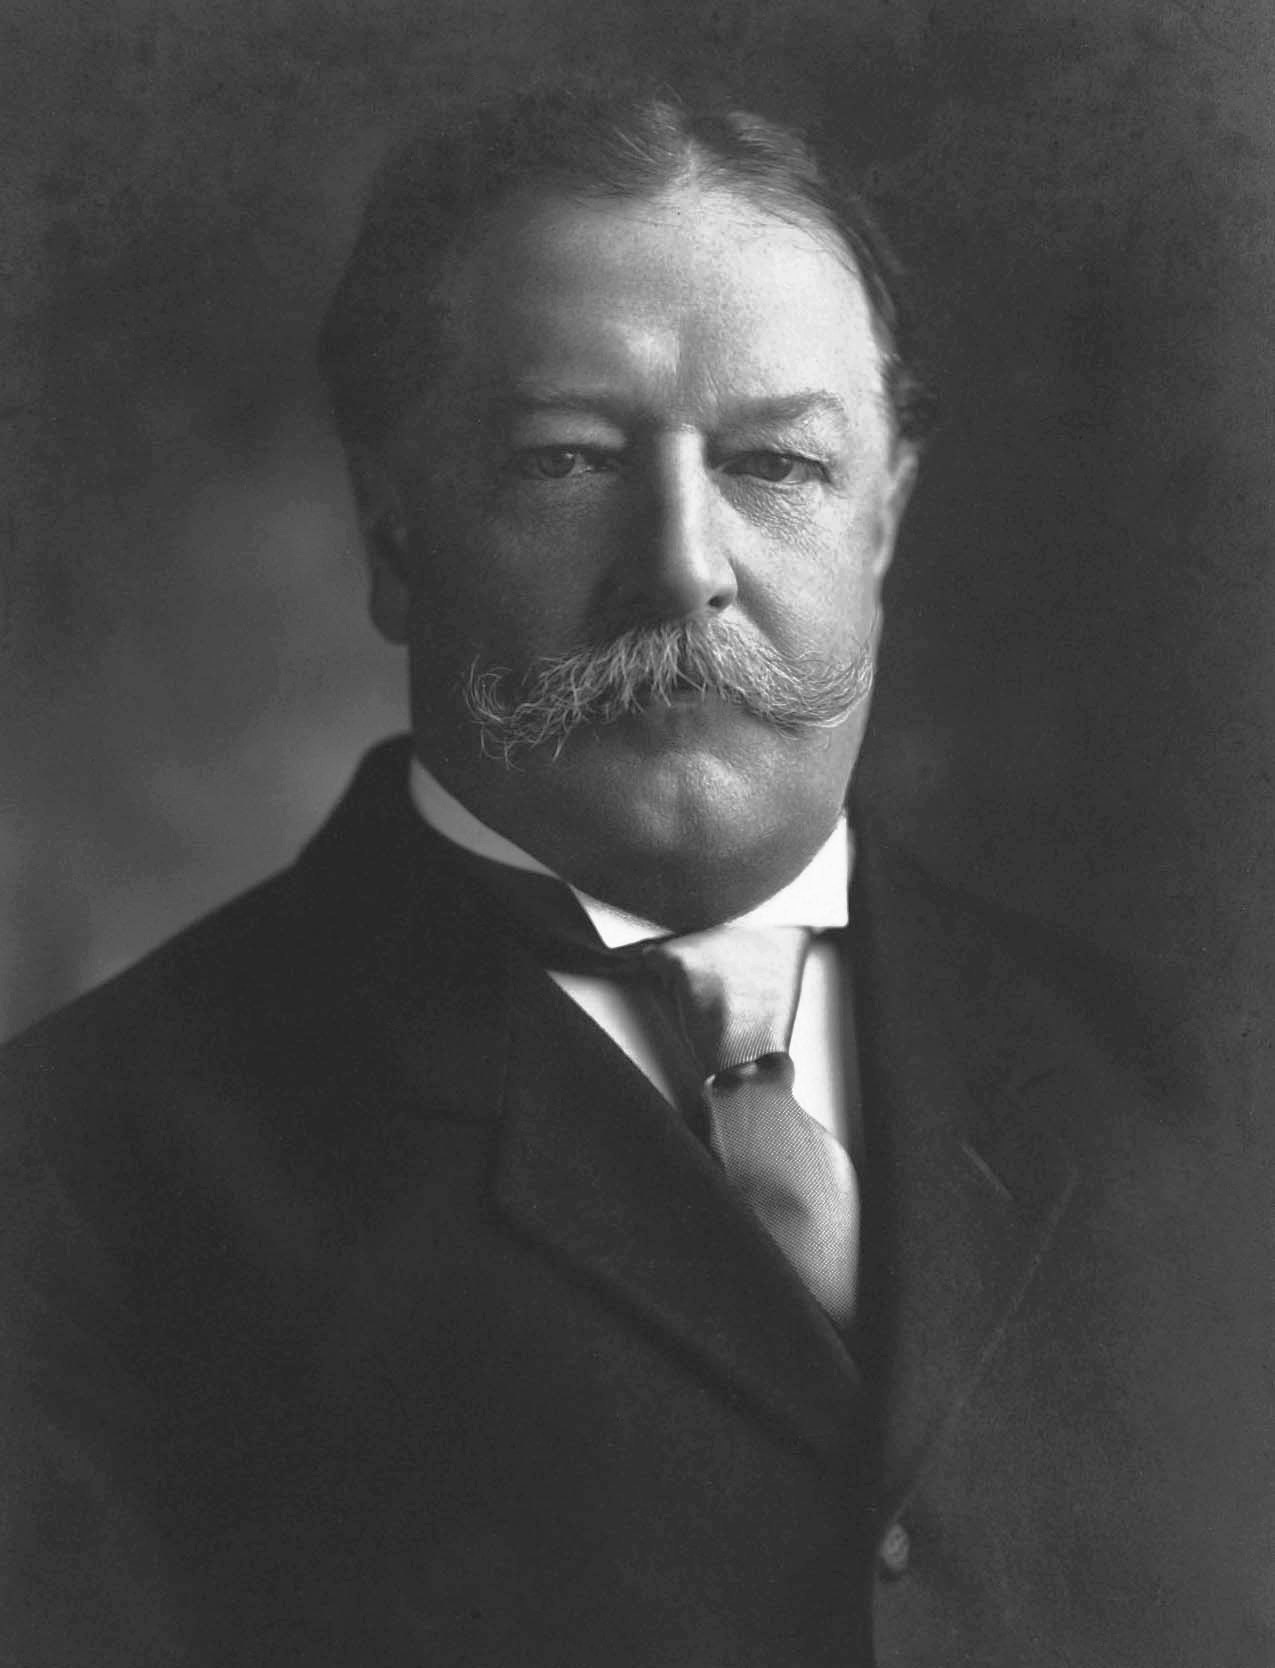 A biography of william howard taft the 27th president of the united states